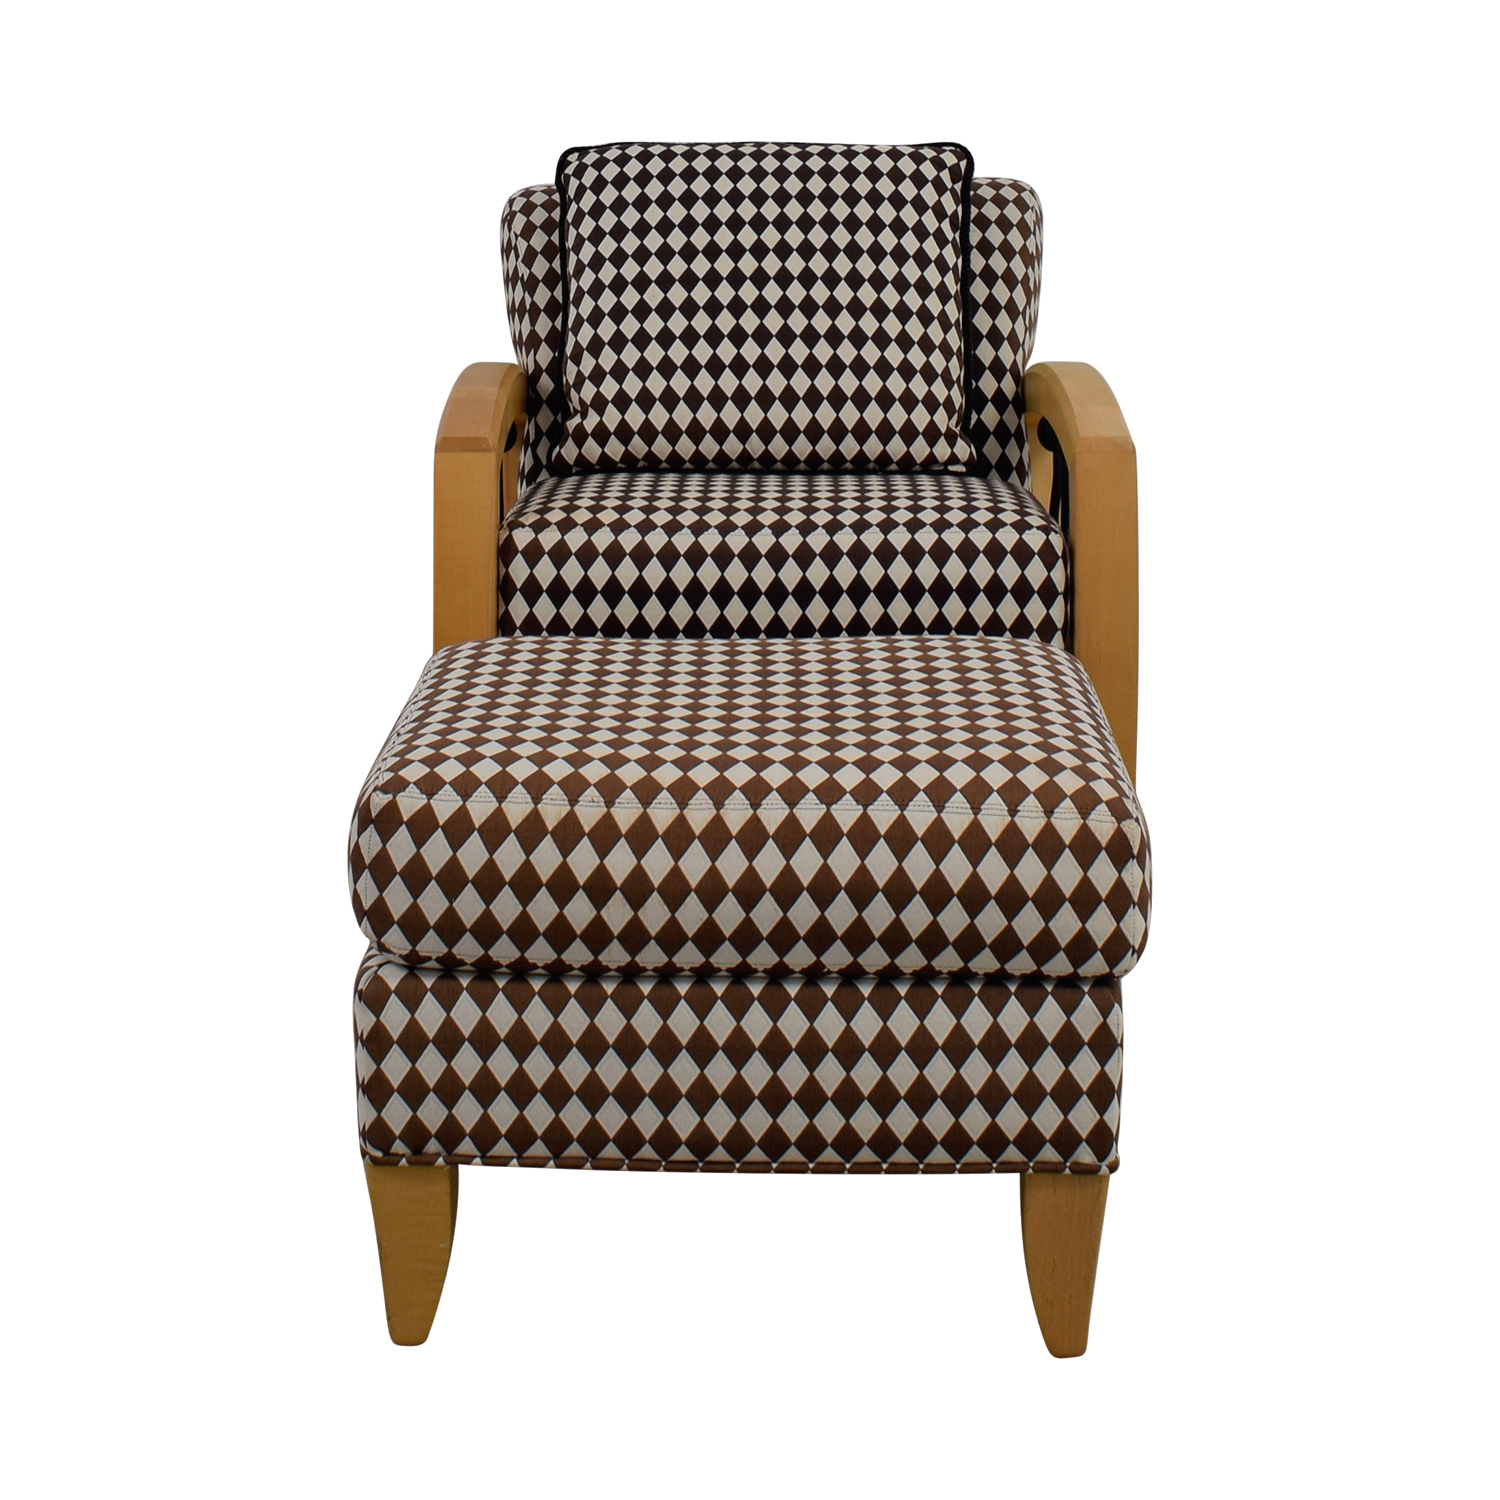 Thayer Coggin Thayer Coggin Cherry Wood Black and White Checkered Accent Chair with Ottoman brown/white